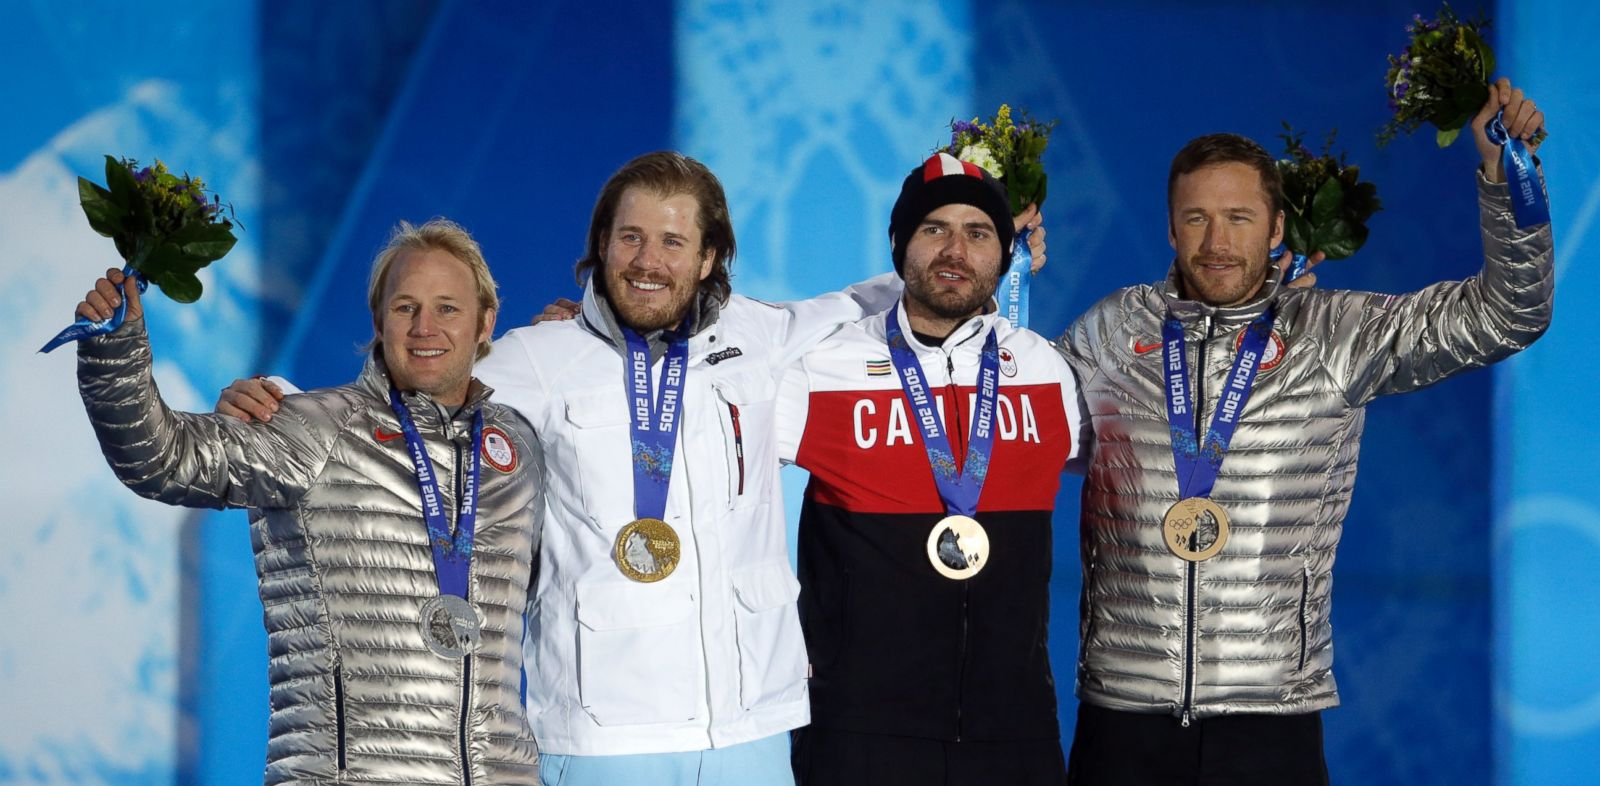 PHOTO: Mens super-G medalists, from left, Andrew Weibrecht, silver, Kjetil Jansrud, gold, and Jan Hudec and Bode Miller, who tied for the bronze, pose with their medals at the 2014 Winter Olympics in Sochi, Russia, Sunday, Feb. 16, 2014.